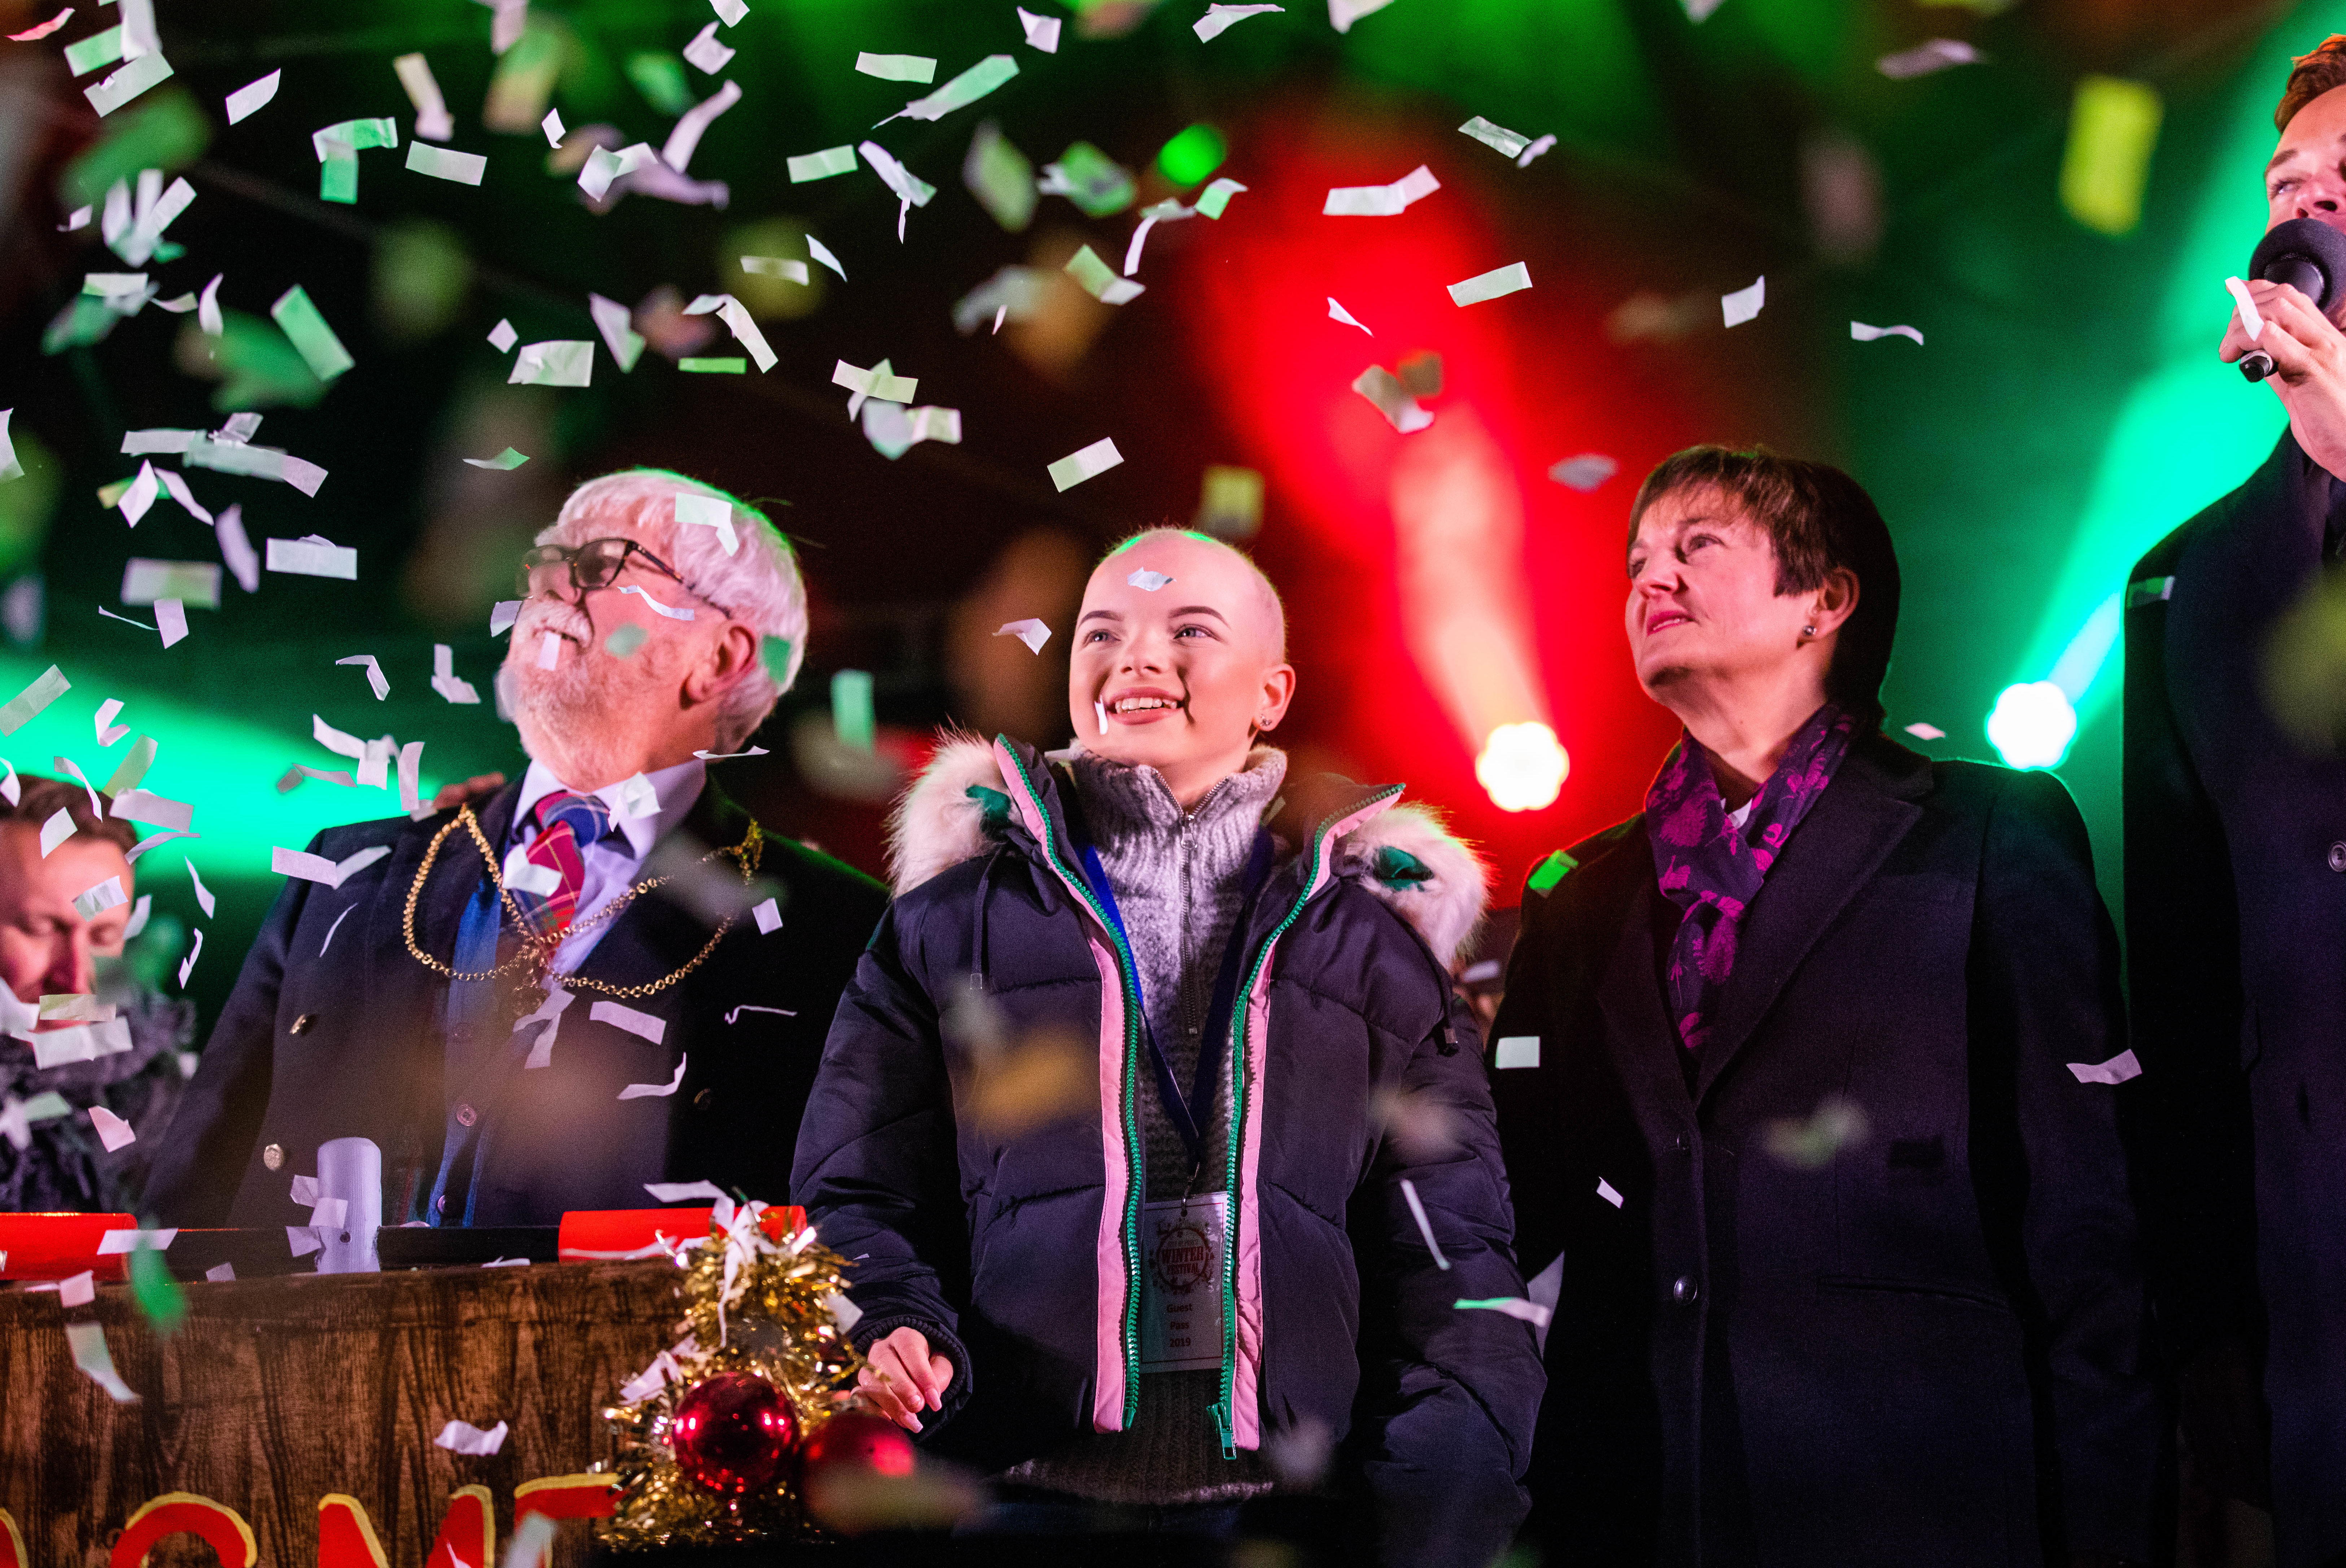 Provost Dennis Melloy, Lily Douglas and PKC Chief Executive Karen Reid at Saturday night's switch-on ceremony